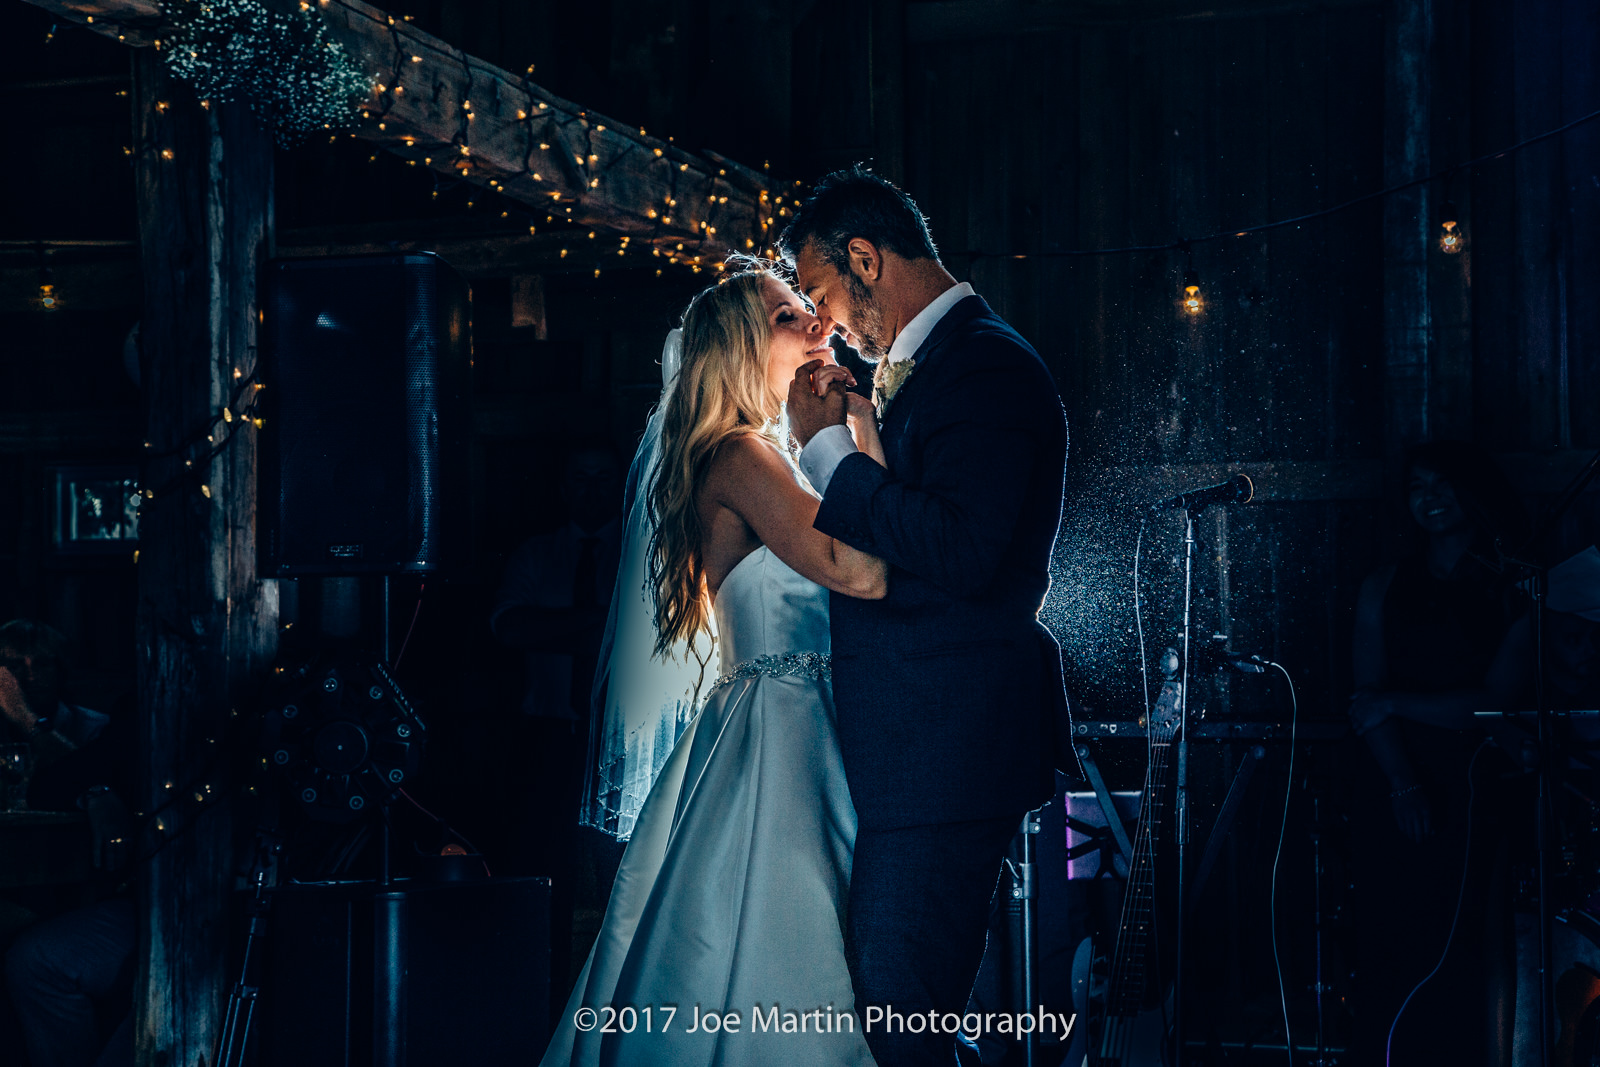 Joe Martin Photography Best New Hampshire Wedding Photographer